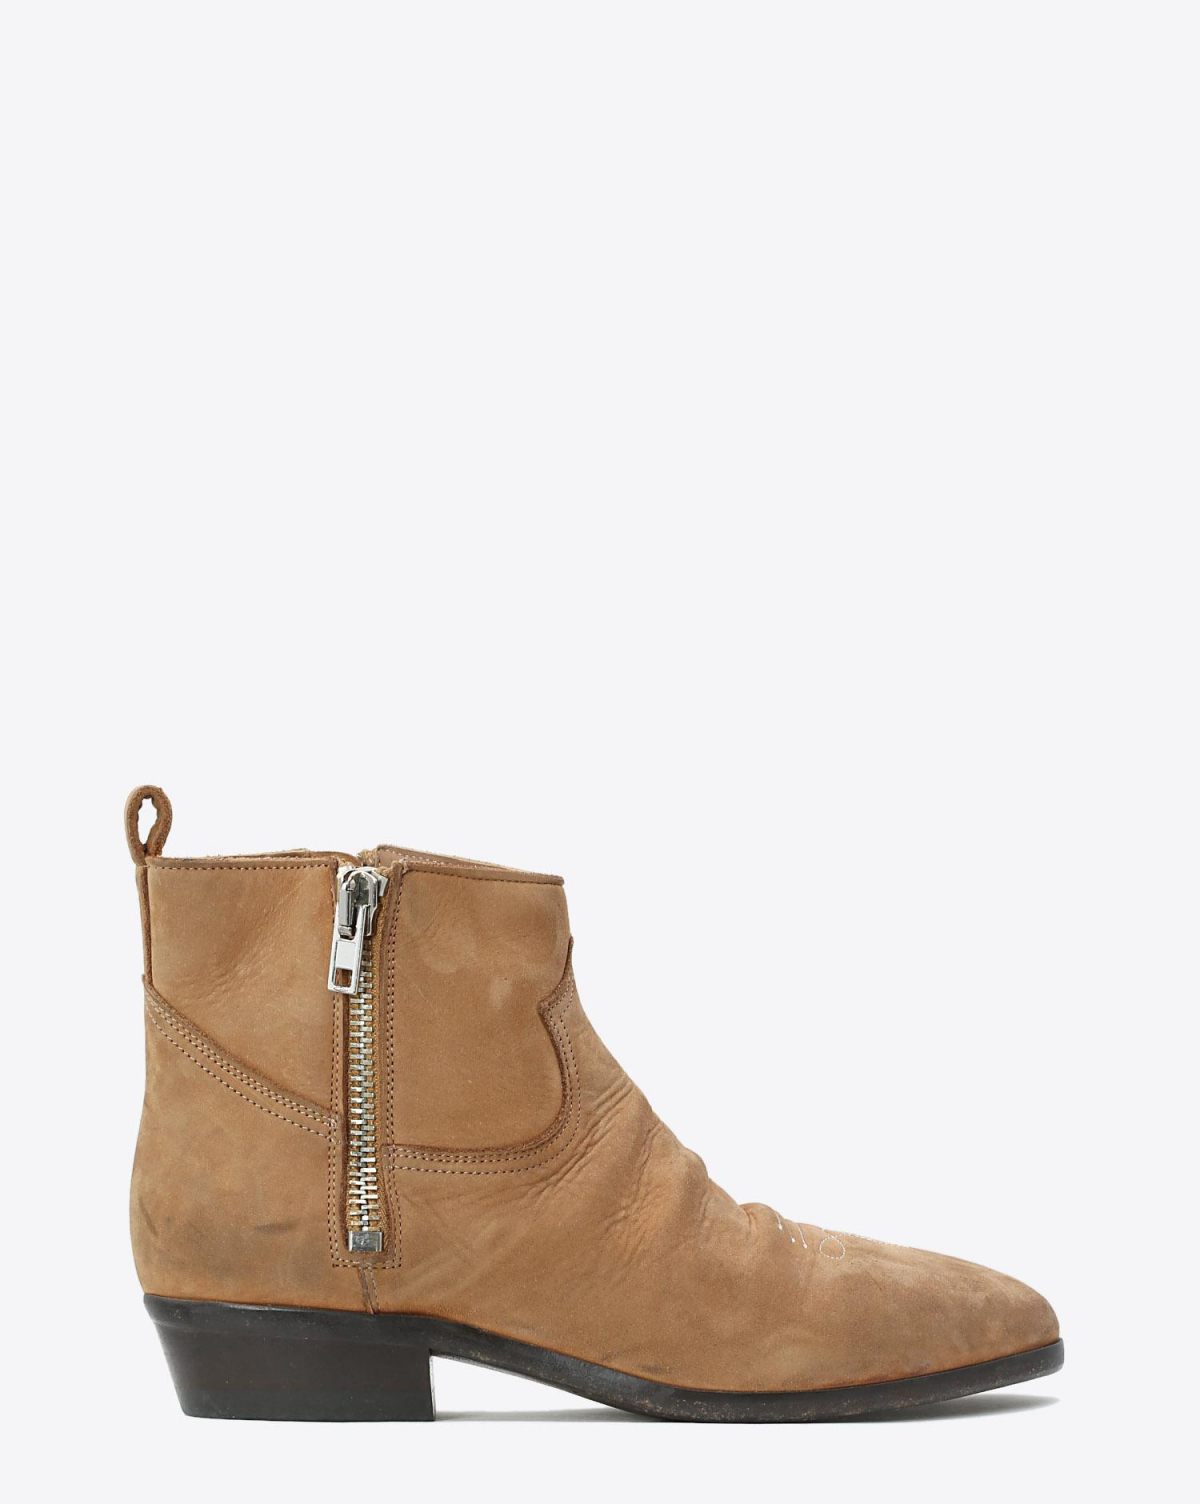 Golden Goose Woman Chaussures Collection Boots Viand - Whisky Leather